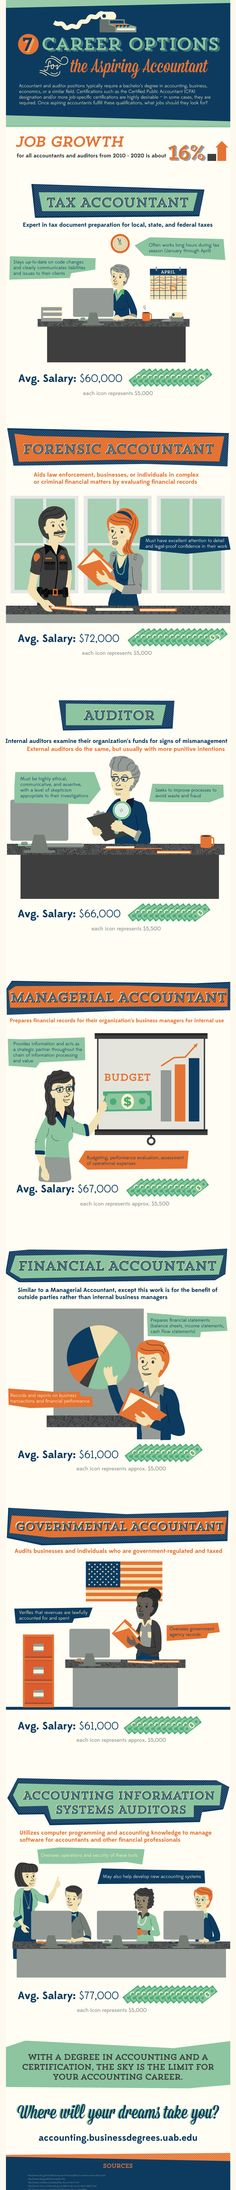 The infographic highlights the various job opportunities that are available to aspiring accountants or even those thinking of entering this highly-rew #accounting